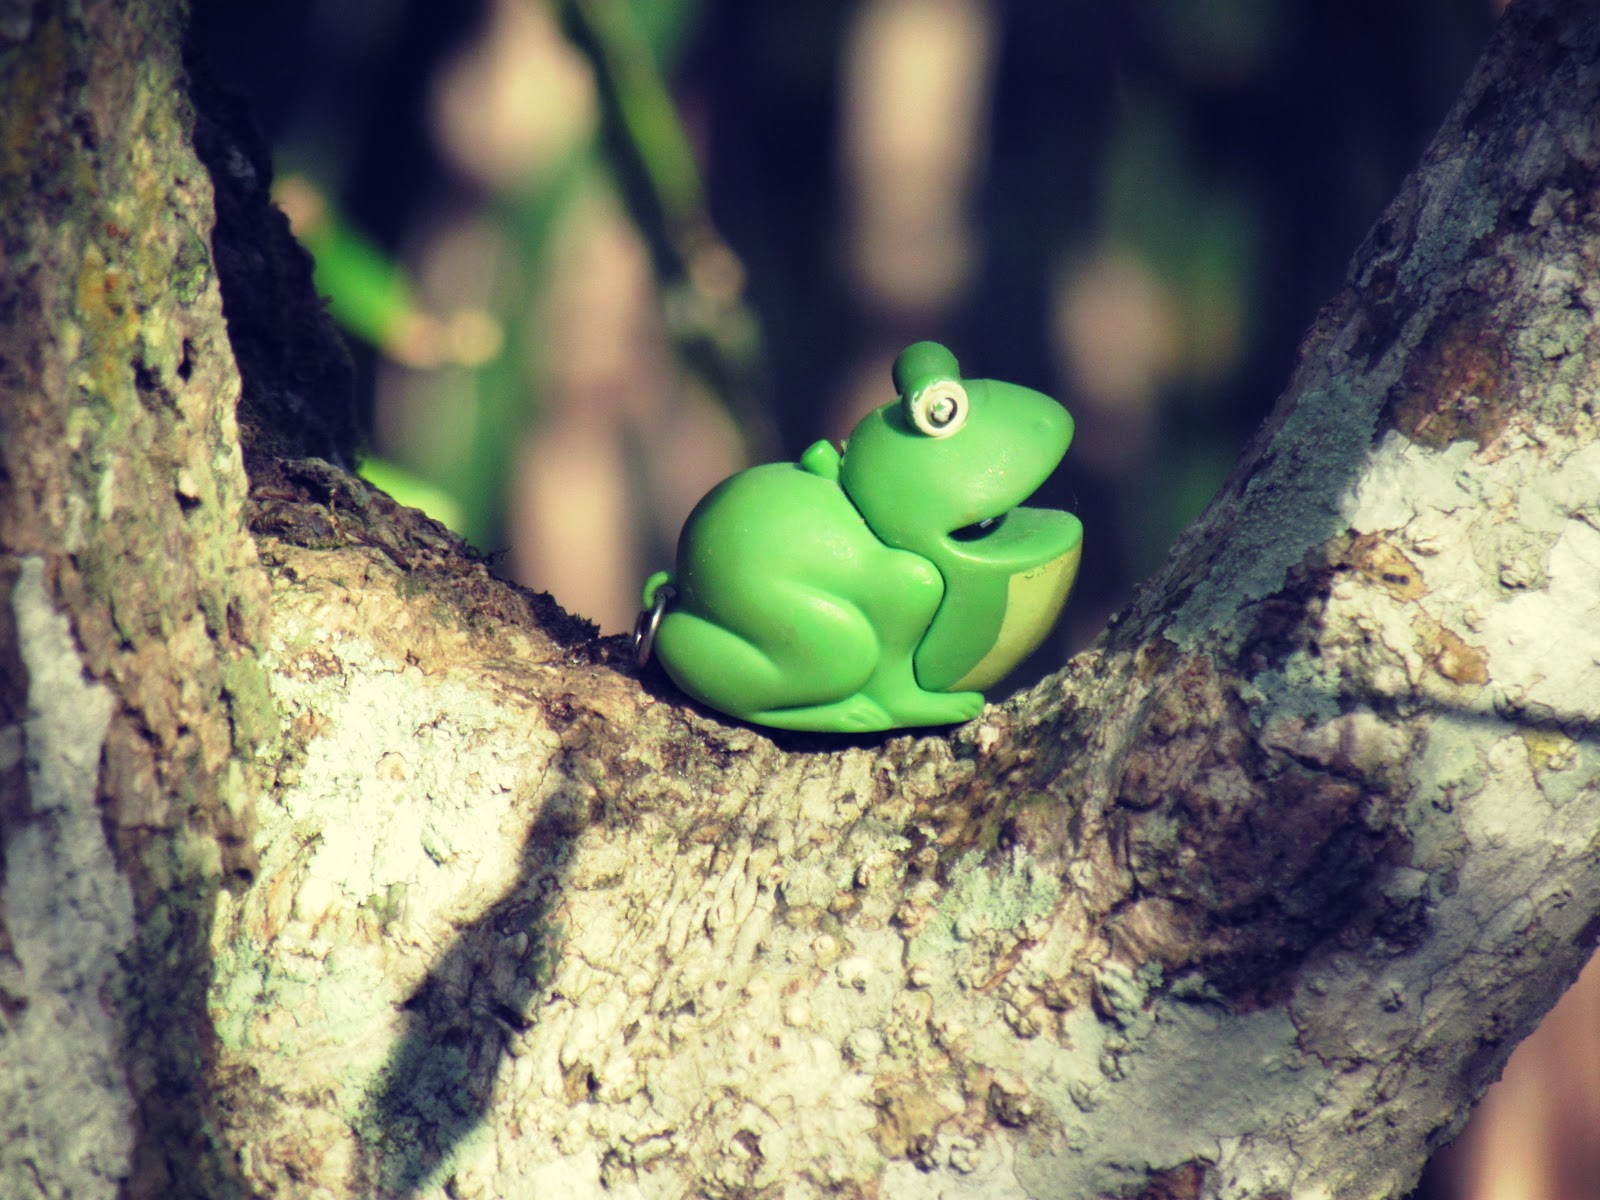 A green toy frog lying in wait in a thick oak tree in Florida with a built-in flashlight